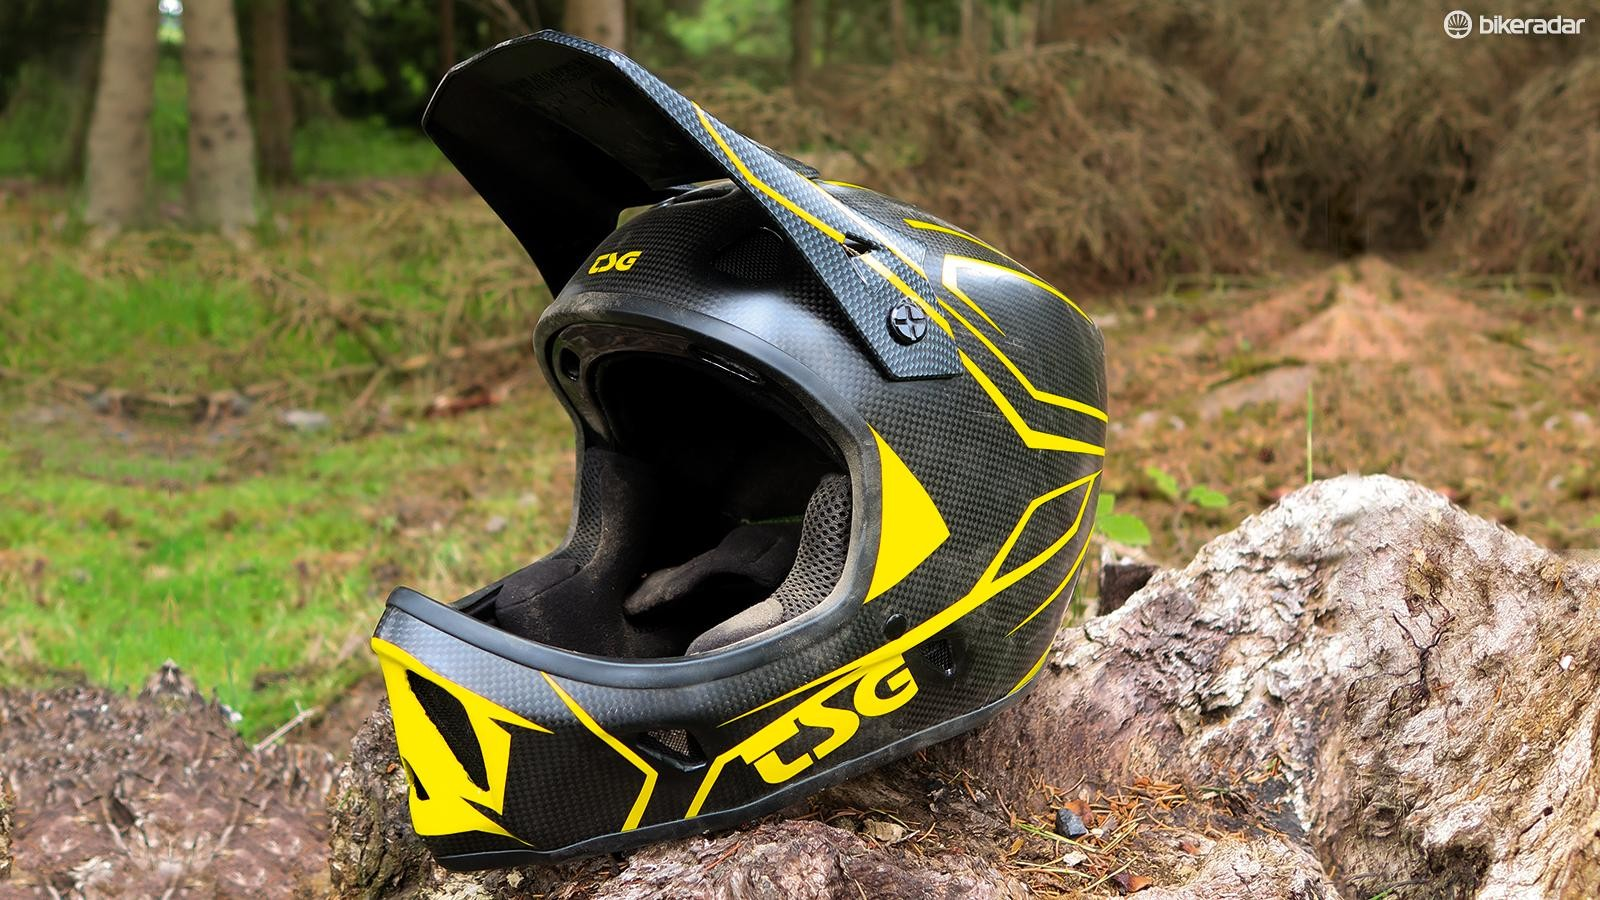 TSG Advance Carbon full-face helmet